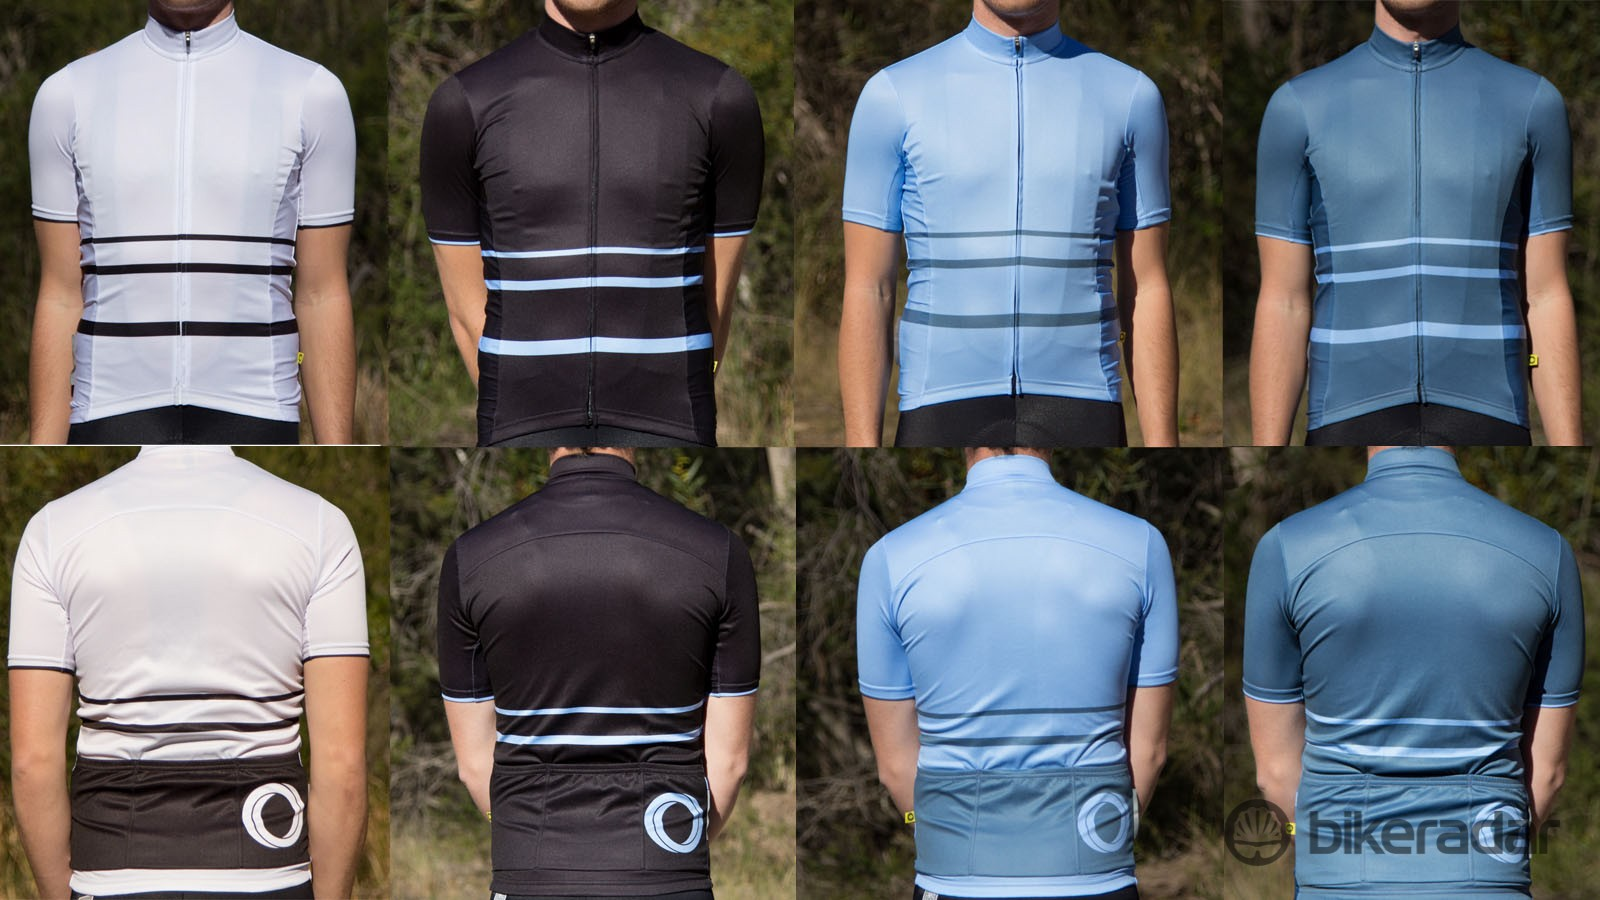 The Full Gas Pro jersey comes in four colours